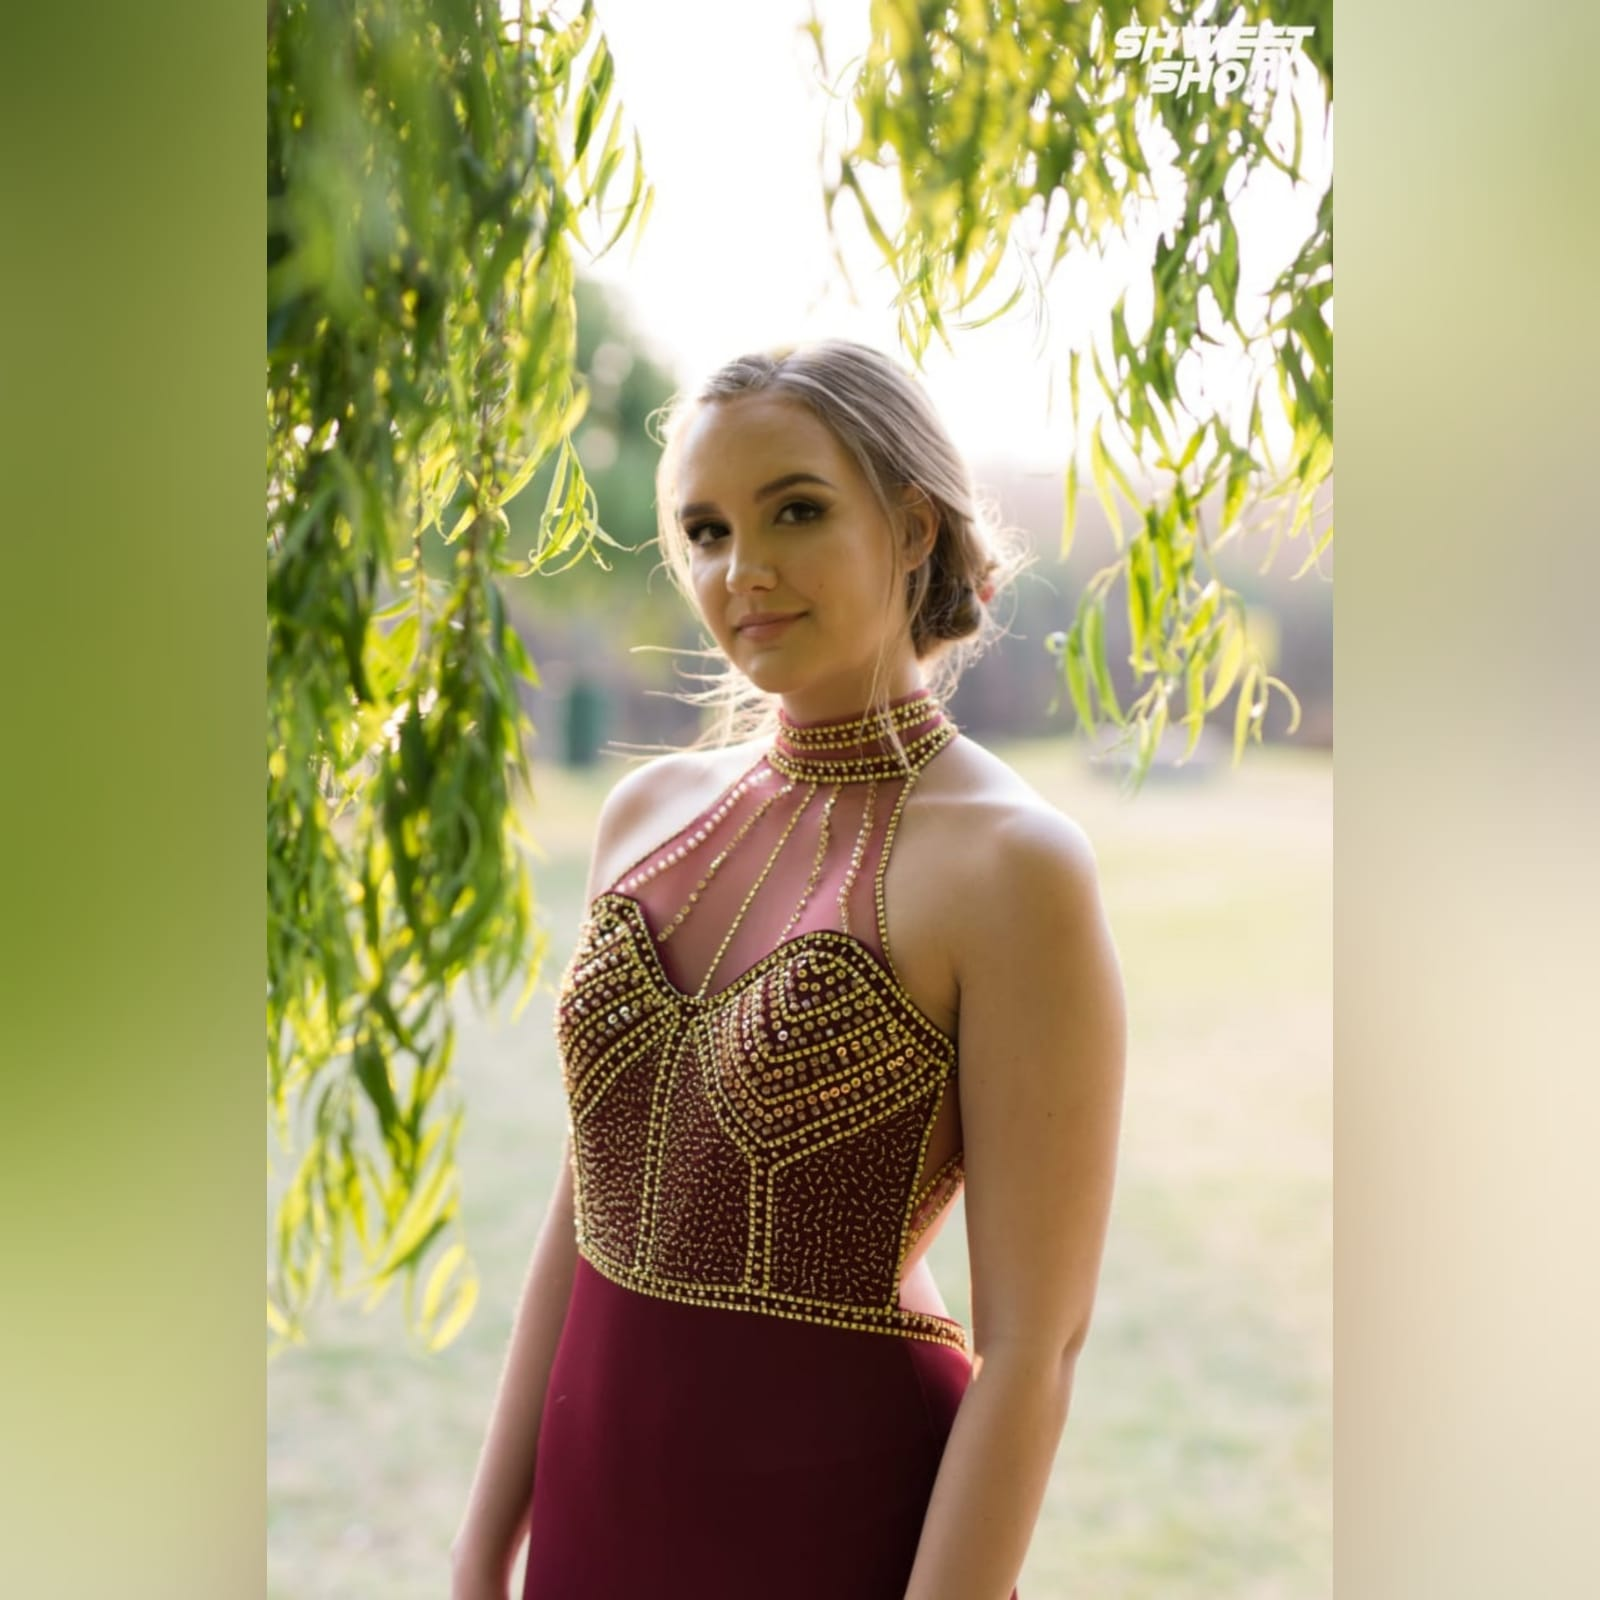 Maroon and gold matric farewell dress with a beaded bodice 9 maroon and gold matric farewell dress with a beaded bodice, low open back with beaded illusion straps. Illusion choker neckline detail with beads and diamante, with a slit and a train.